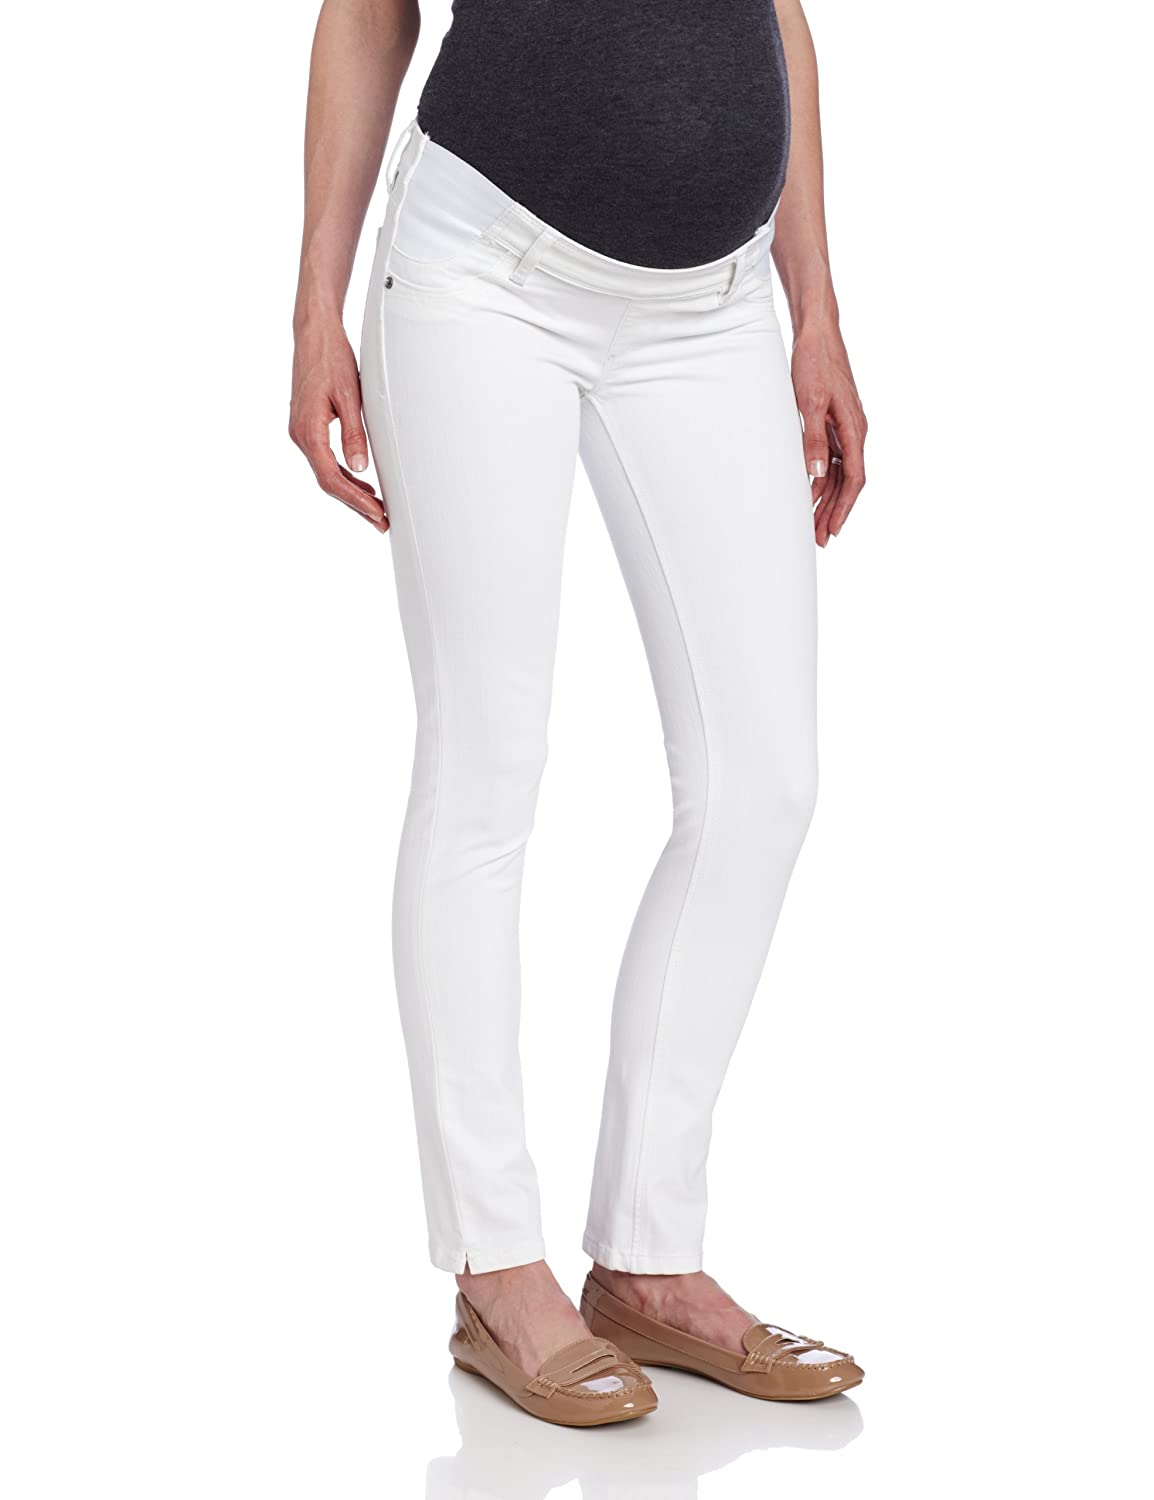 DL1961 womens maternity Angel Maternity Ankle Skinny Jean DL1961 Women' s Collection 2182